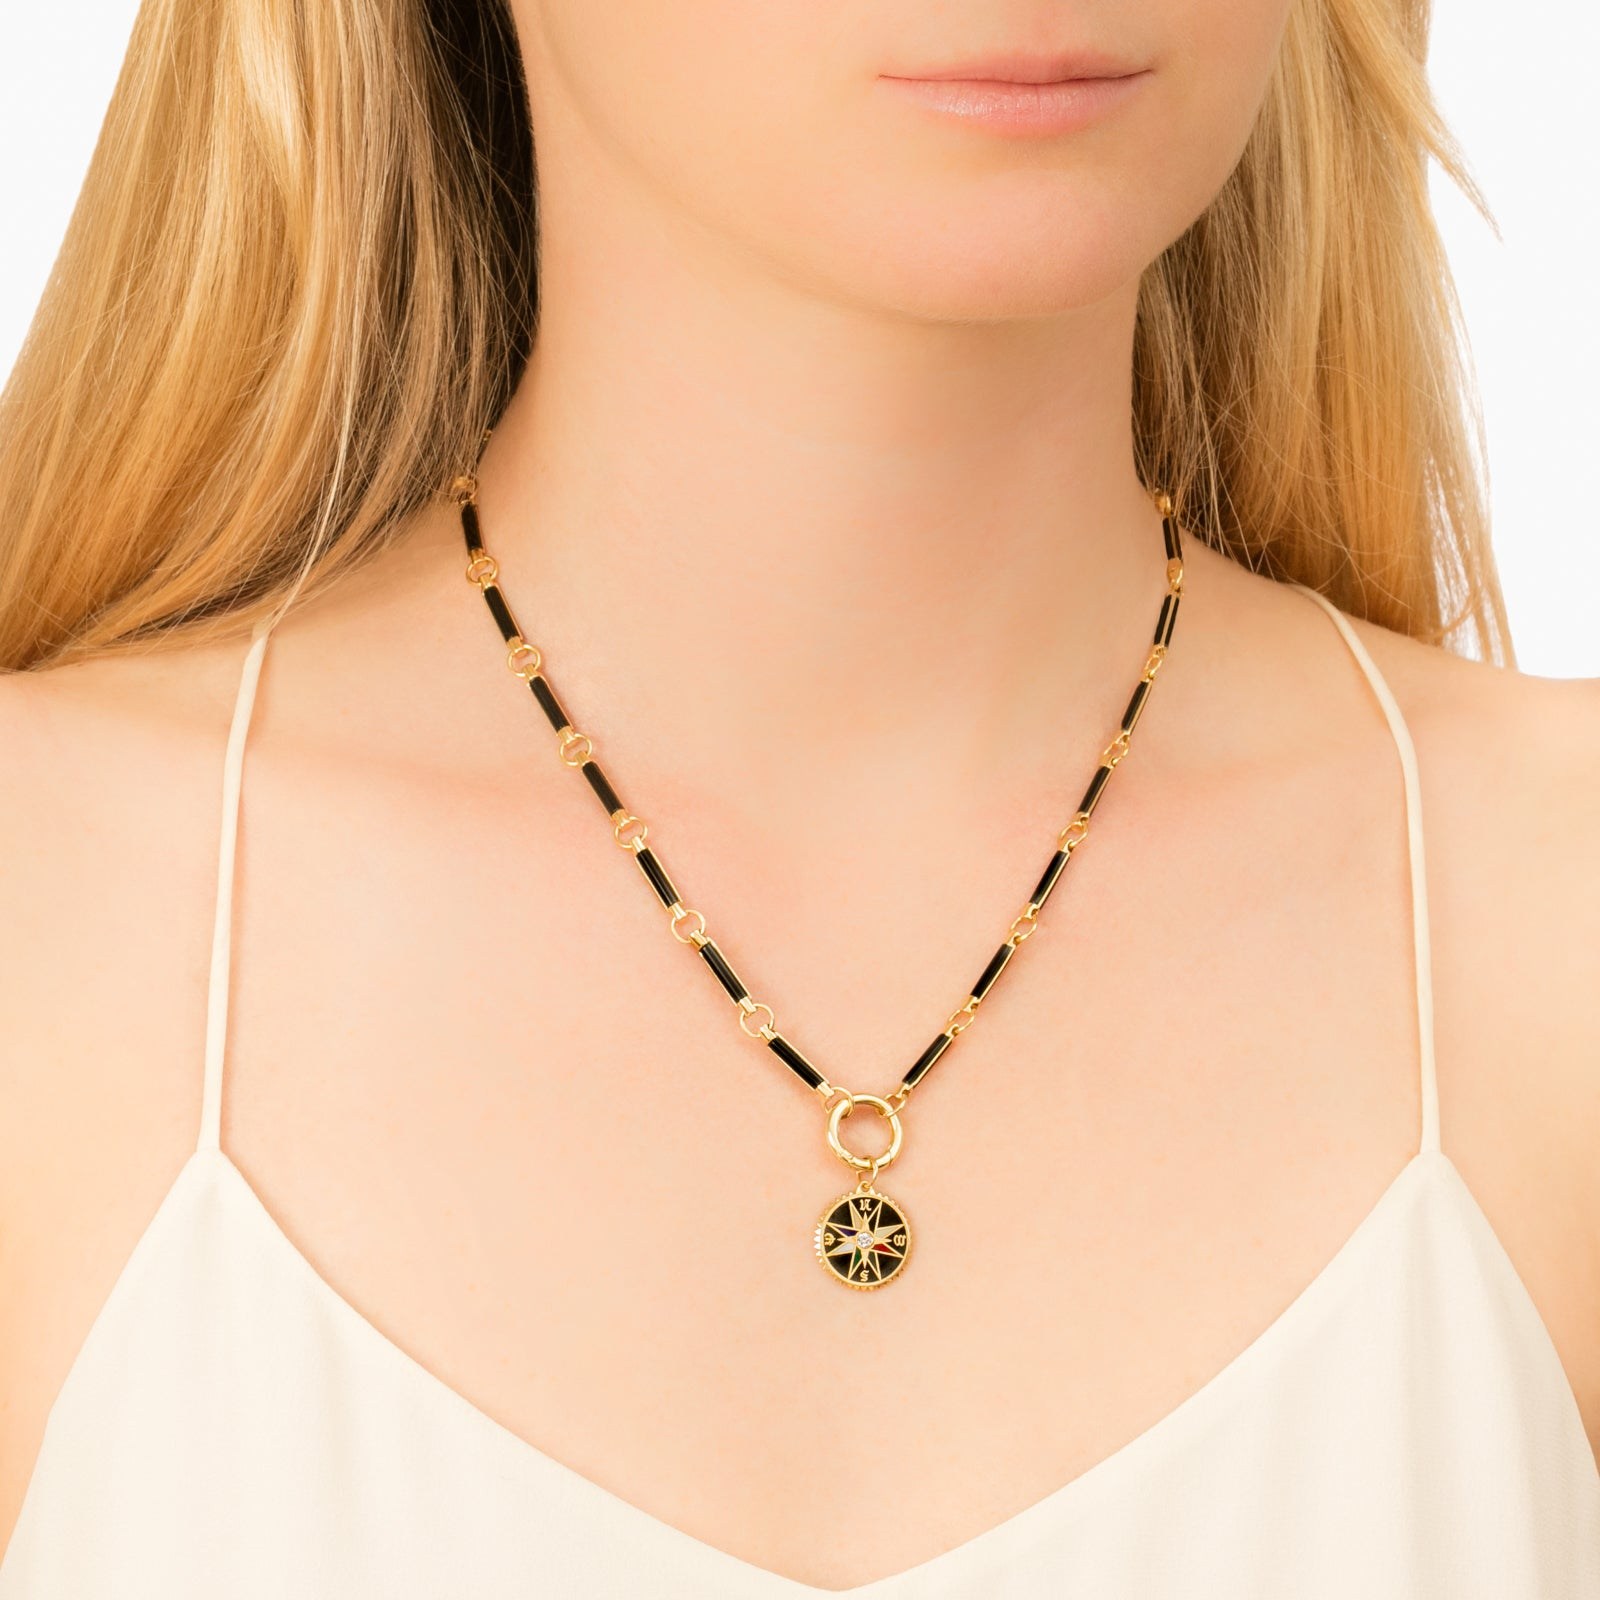 Onyx Element Stone Choker - Foundrae - Necklaces | Broken English Jewelry